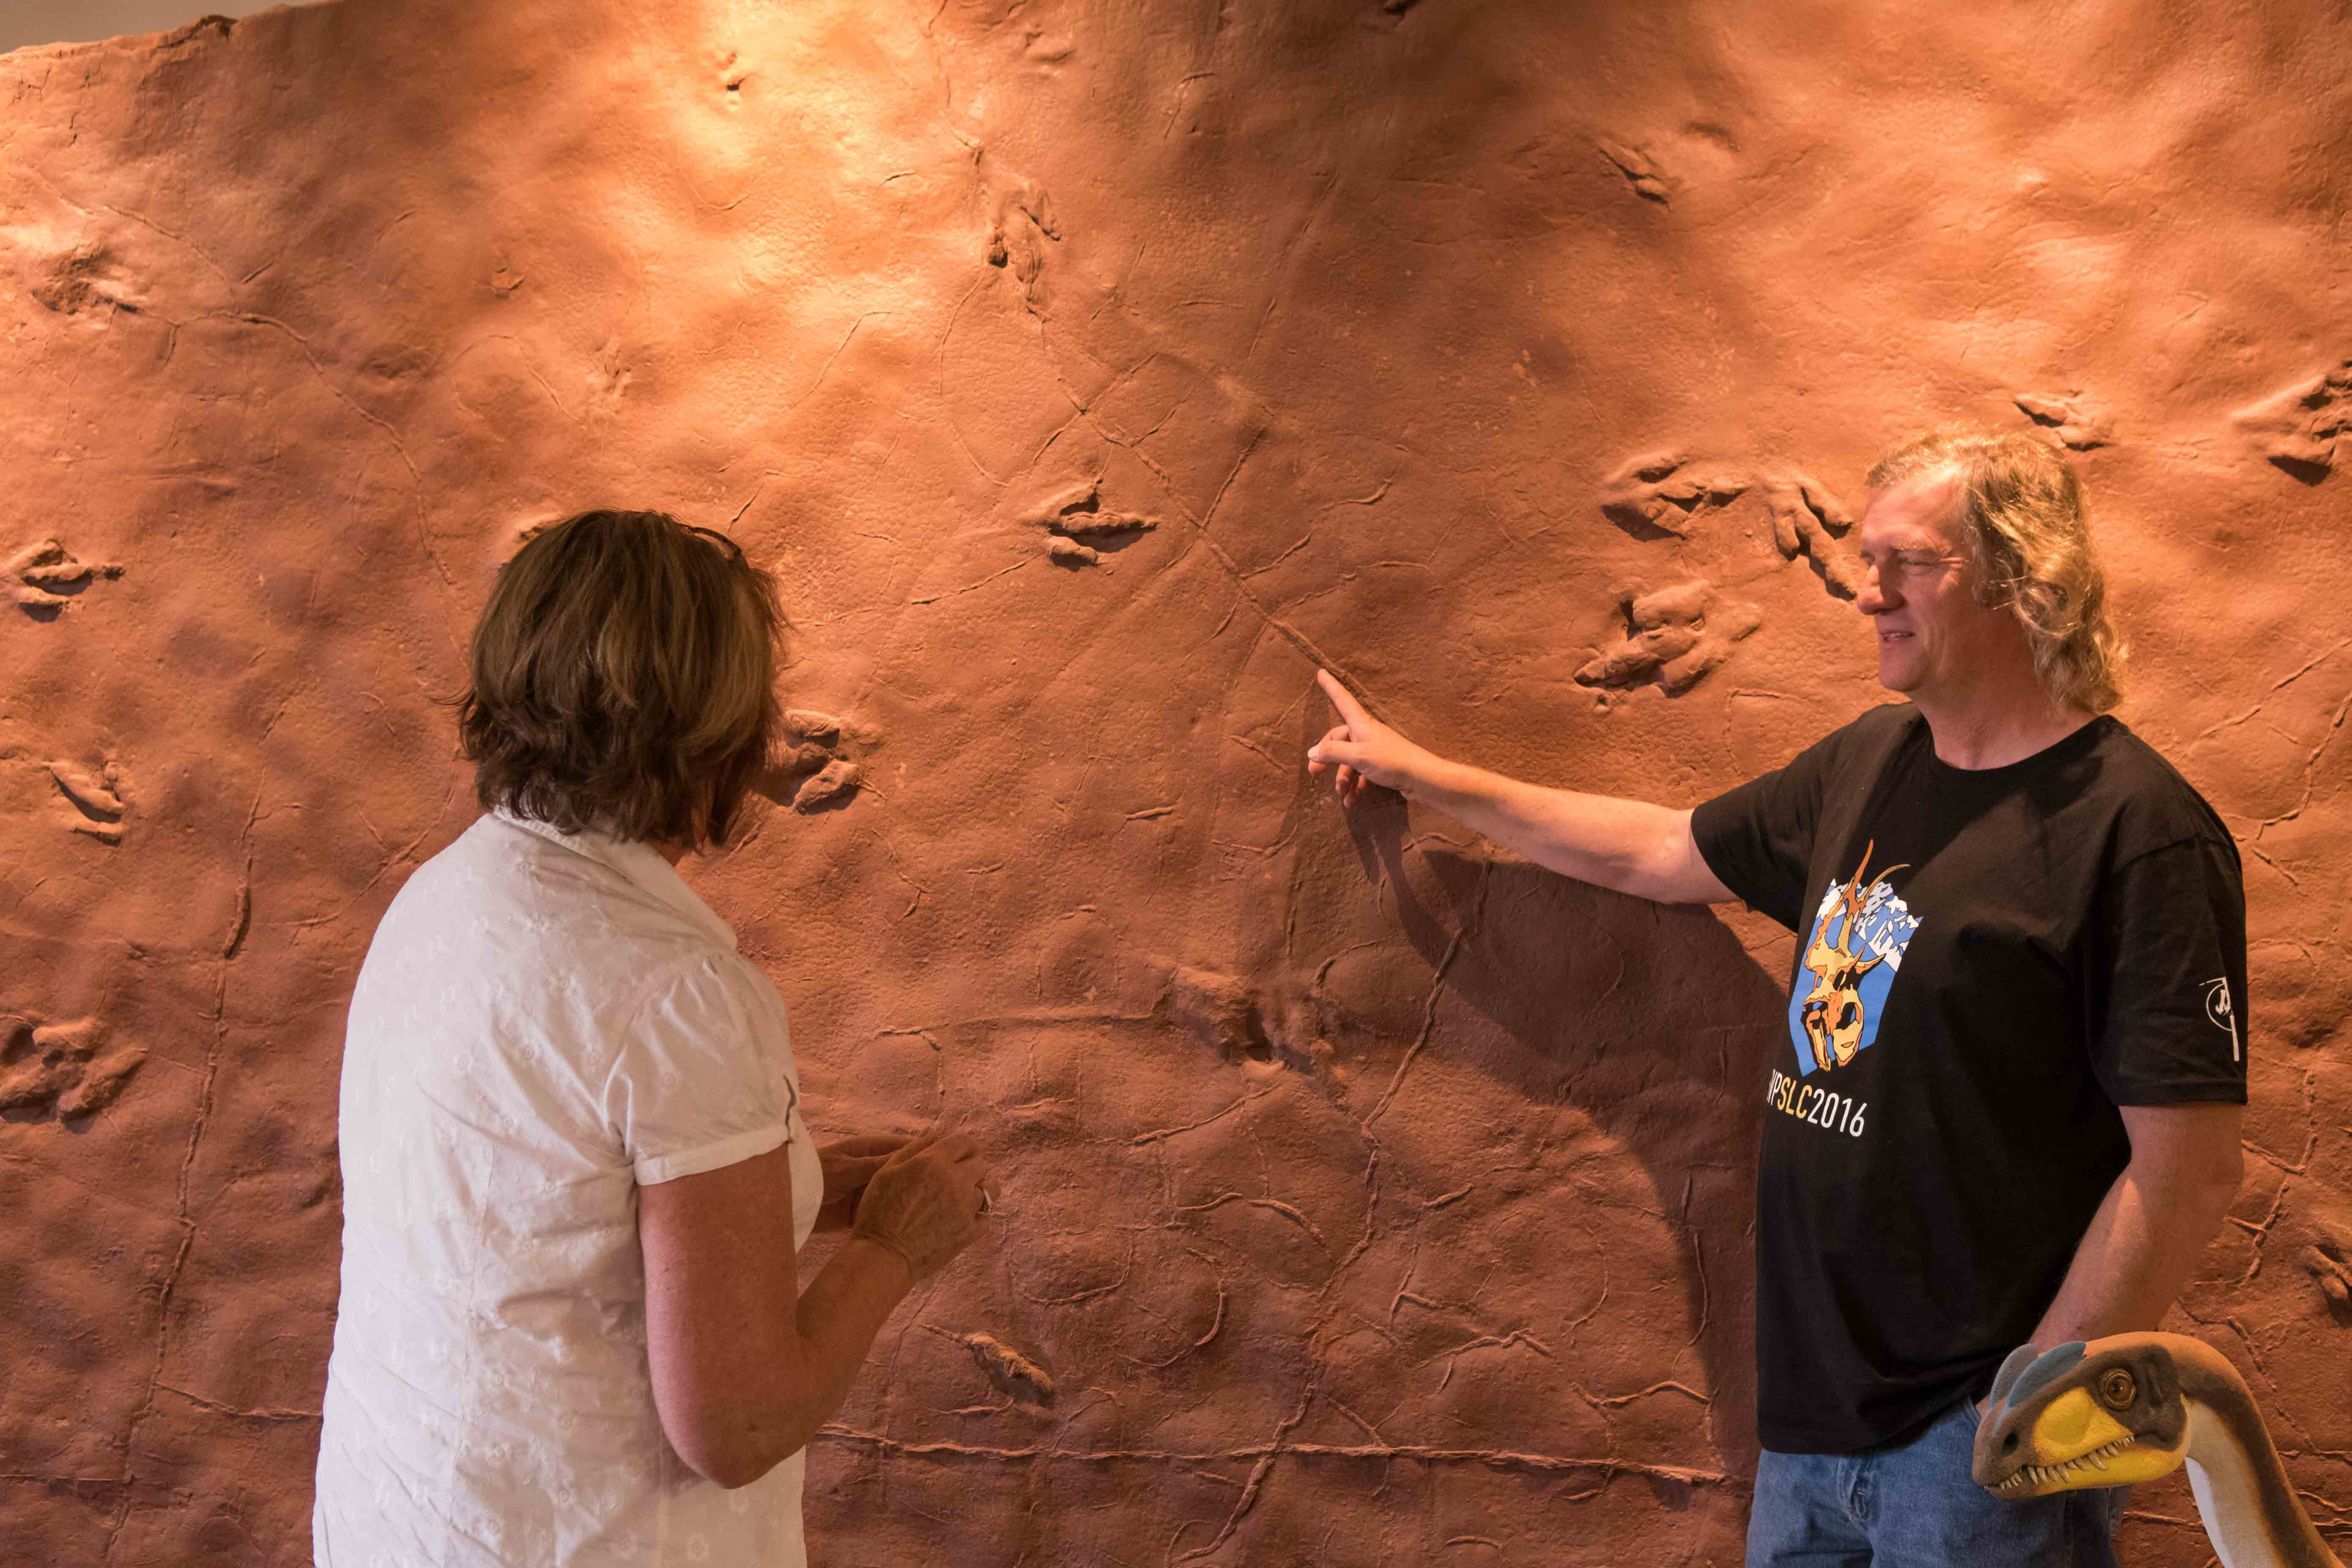 Andrew Milner, paleontologist and curator, Dinosaur Discovery Site, St. George, Utah, Oct. 31, 2016 | Photo by Jim Lillywhite, St. George News